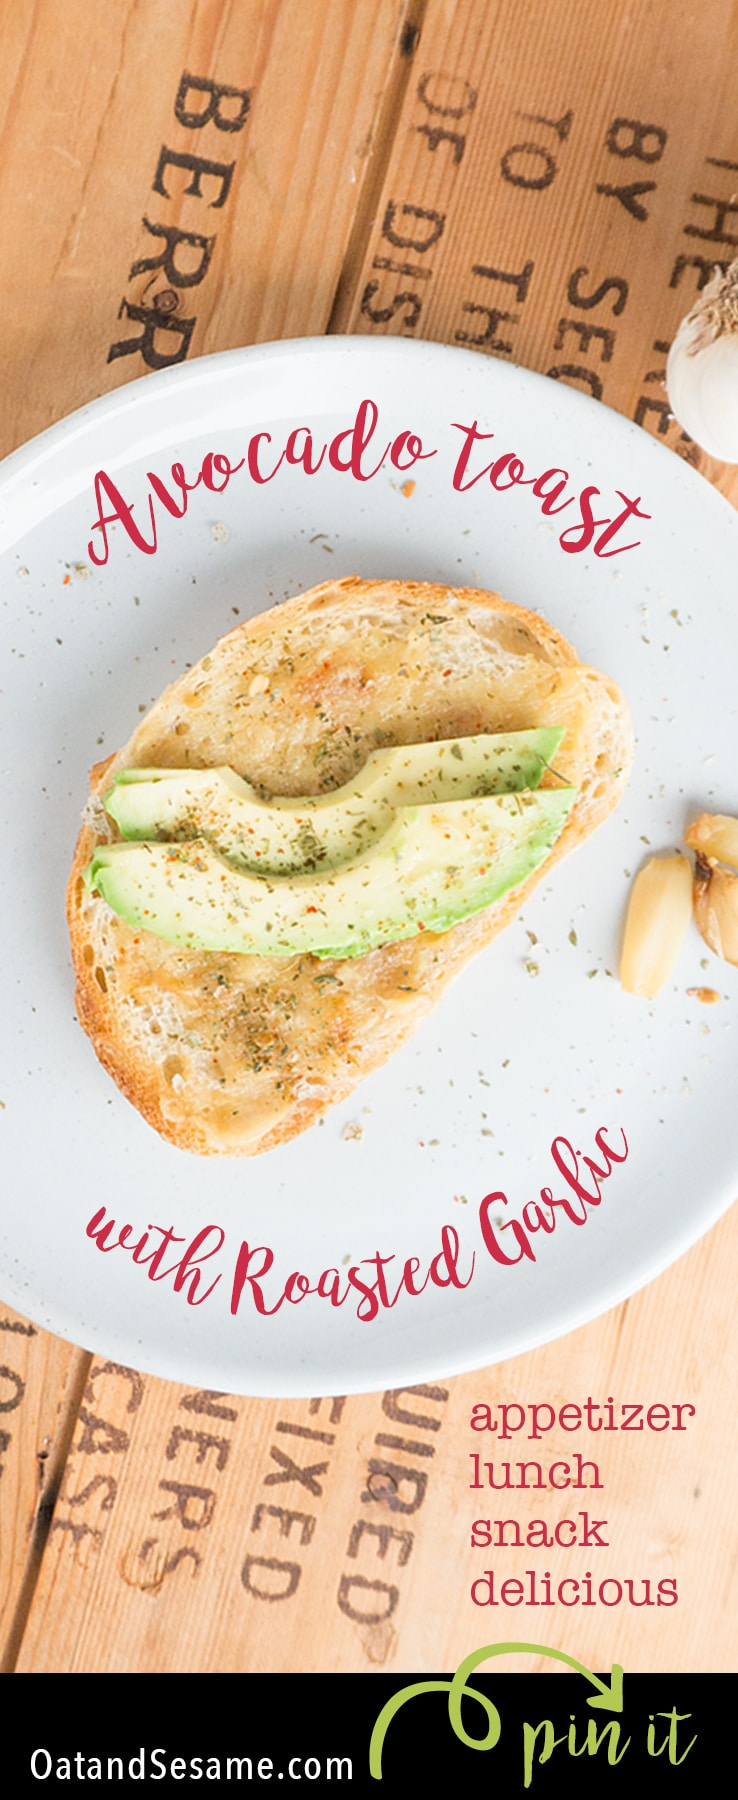 Avocado Toast with Roasted Garlic! Yet another delicious way to eat avocado toast! #AVOCADO | #TOAST | #Recipes at OatandSesame.com